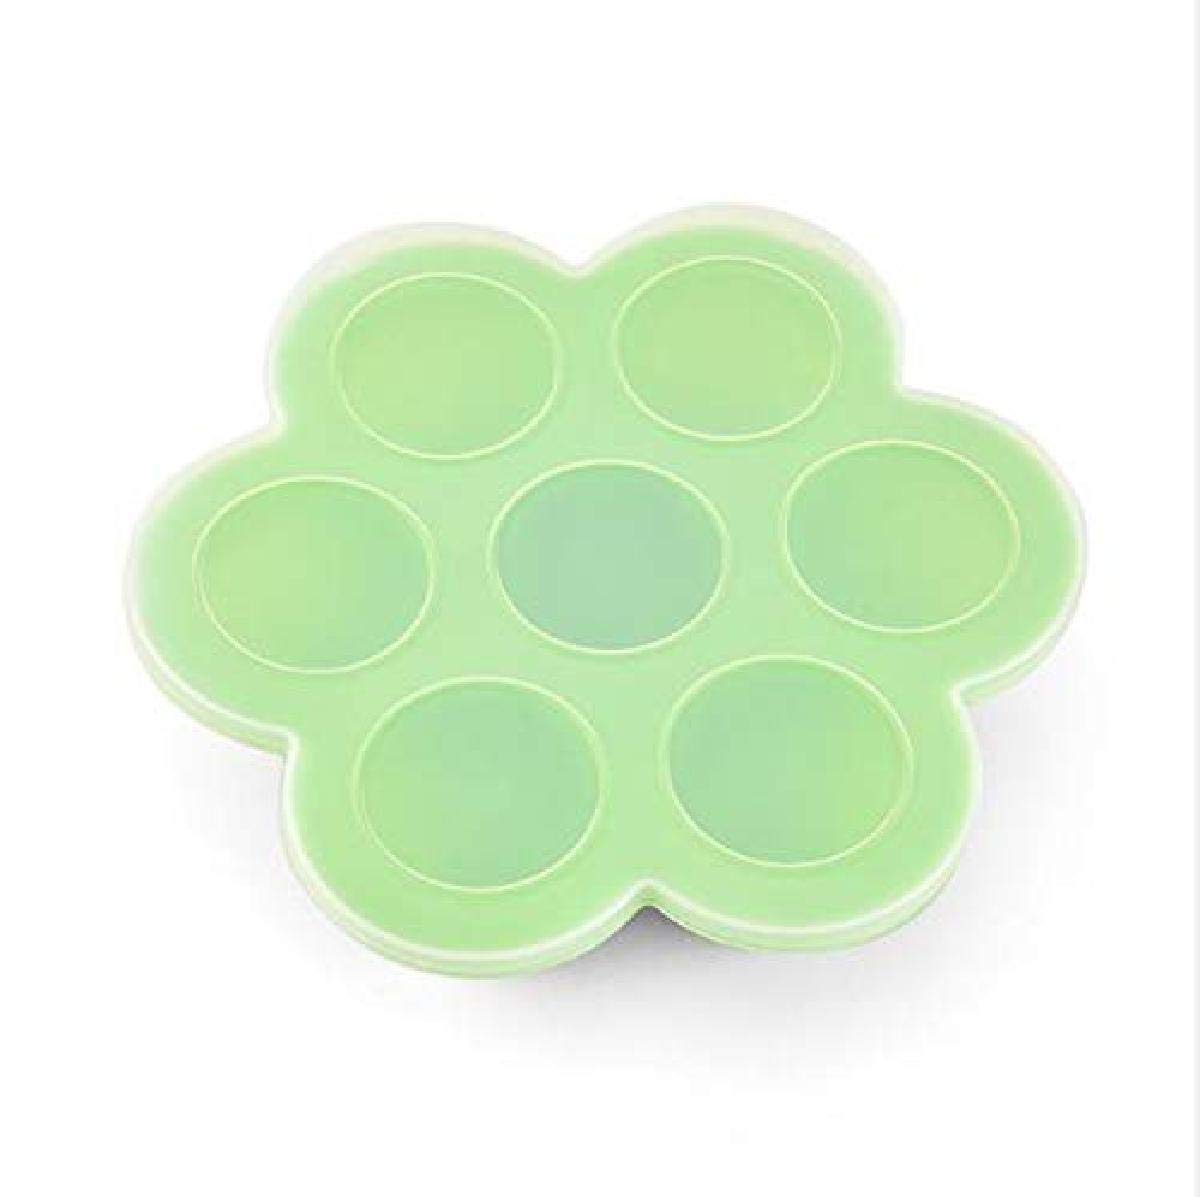 SAYGOGO 7-Hole Silicone Children's Food Supplement Box/Crisper/Jelly Ice Cube with Lid, Green, 8.25x8.25x1.97